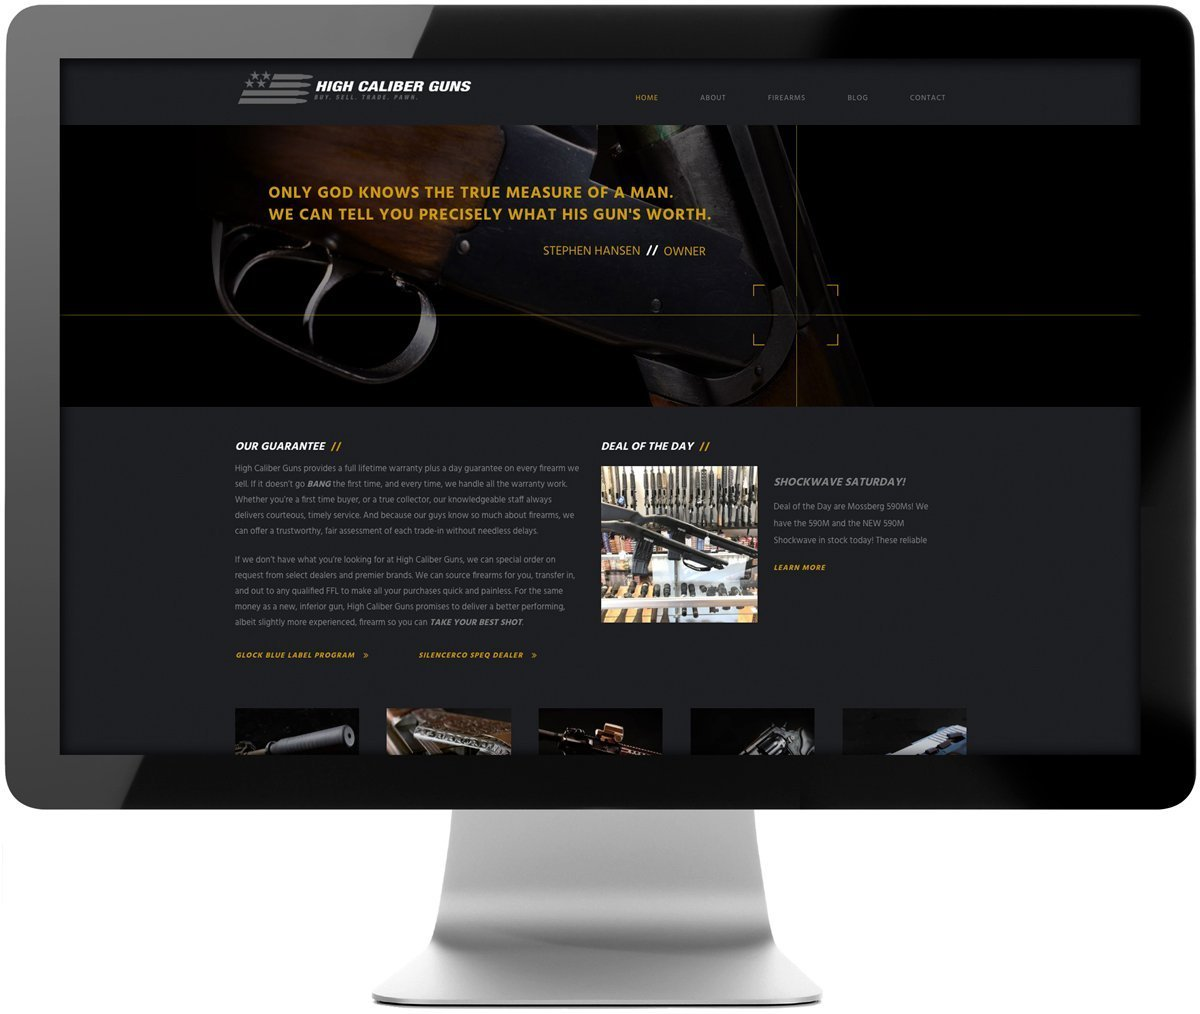 New SEO optimized website developed by Cerberus in New Orleans, LA.